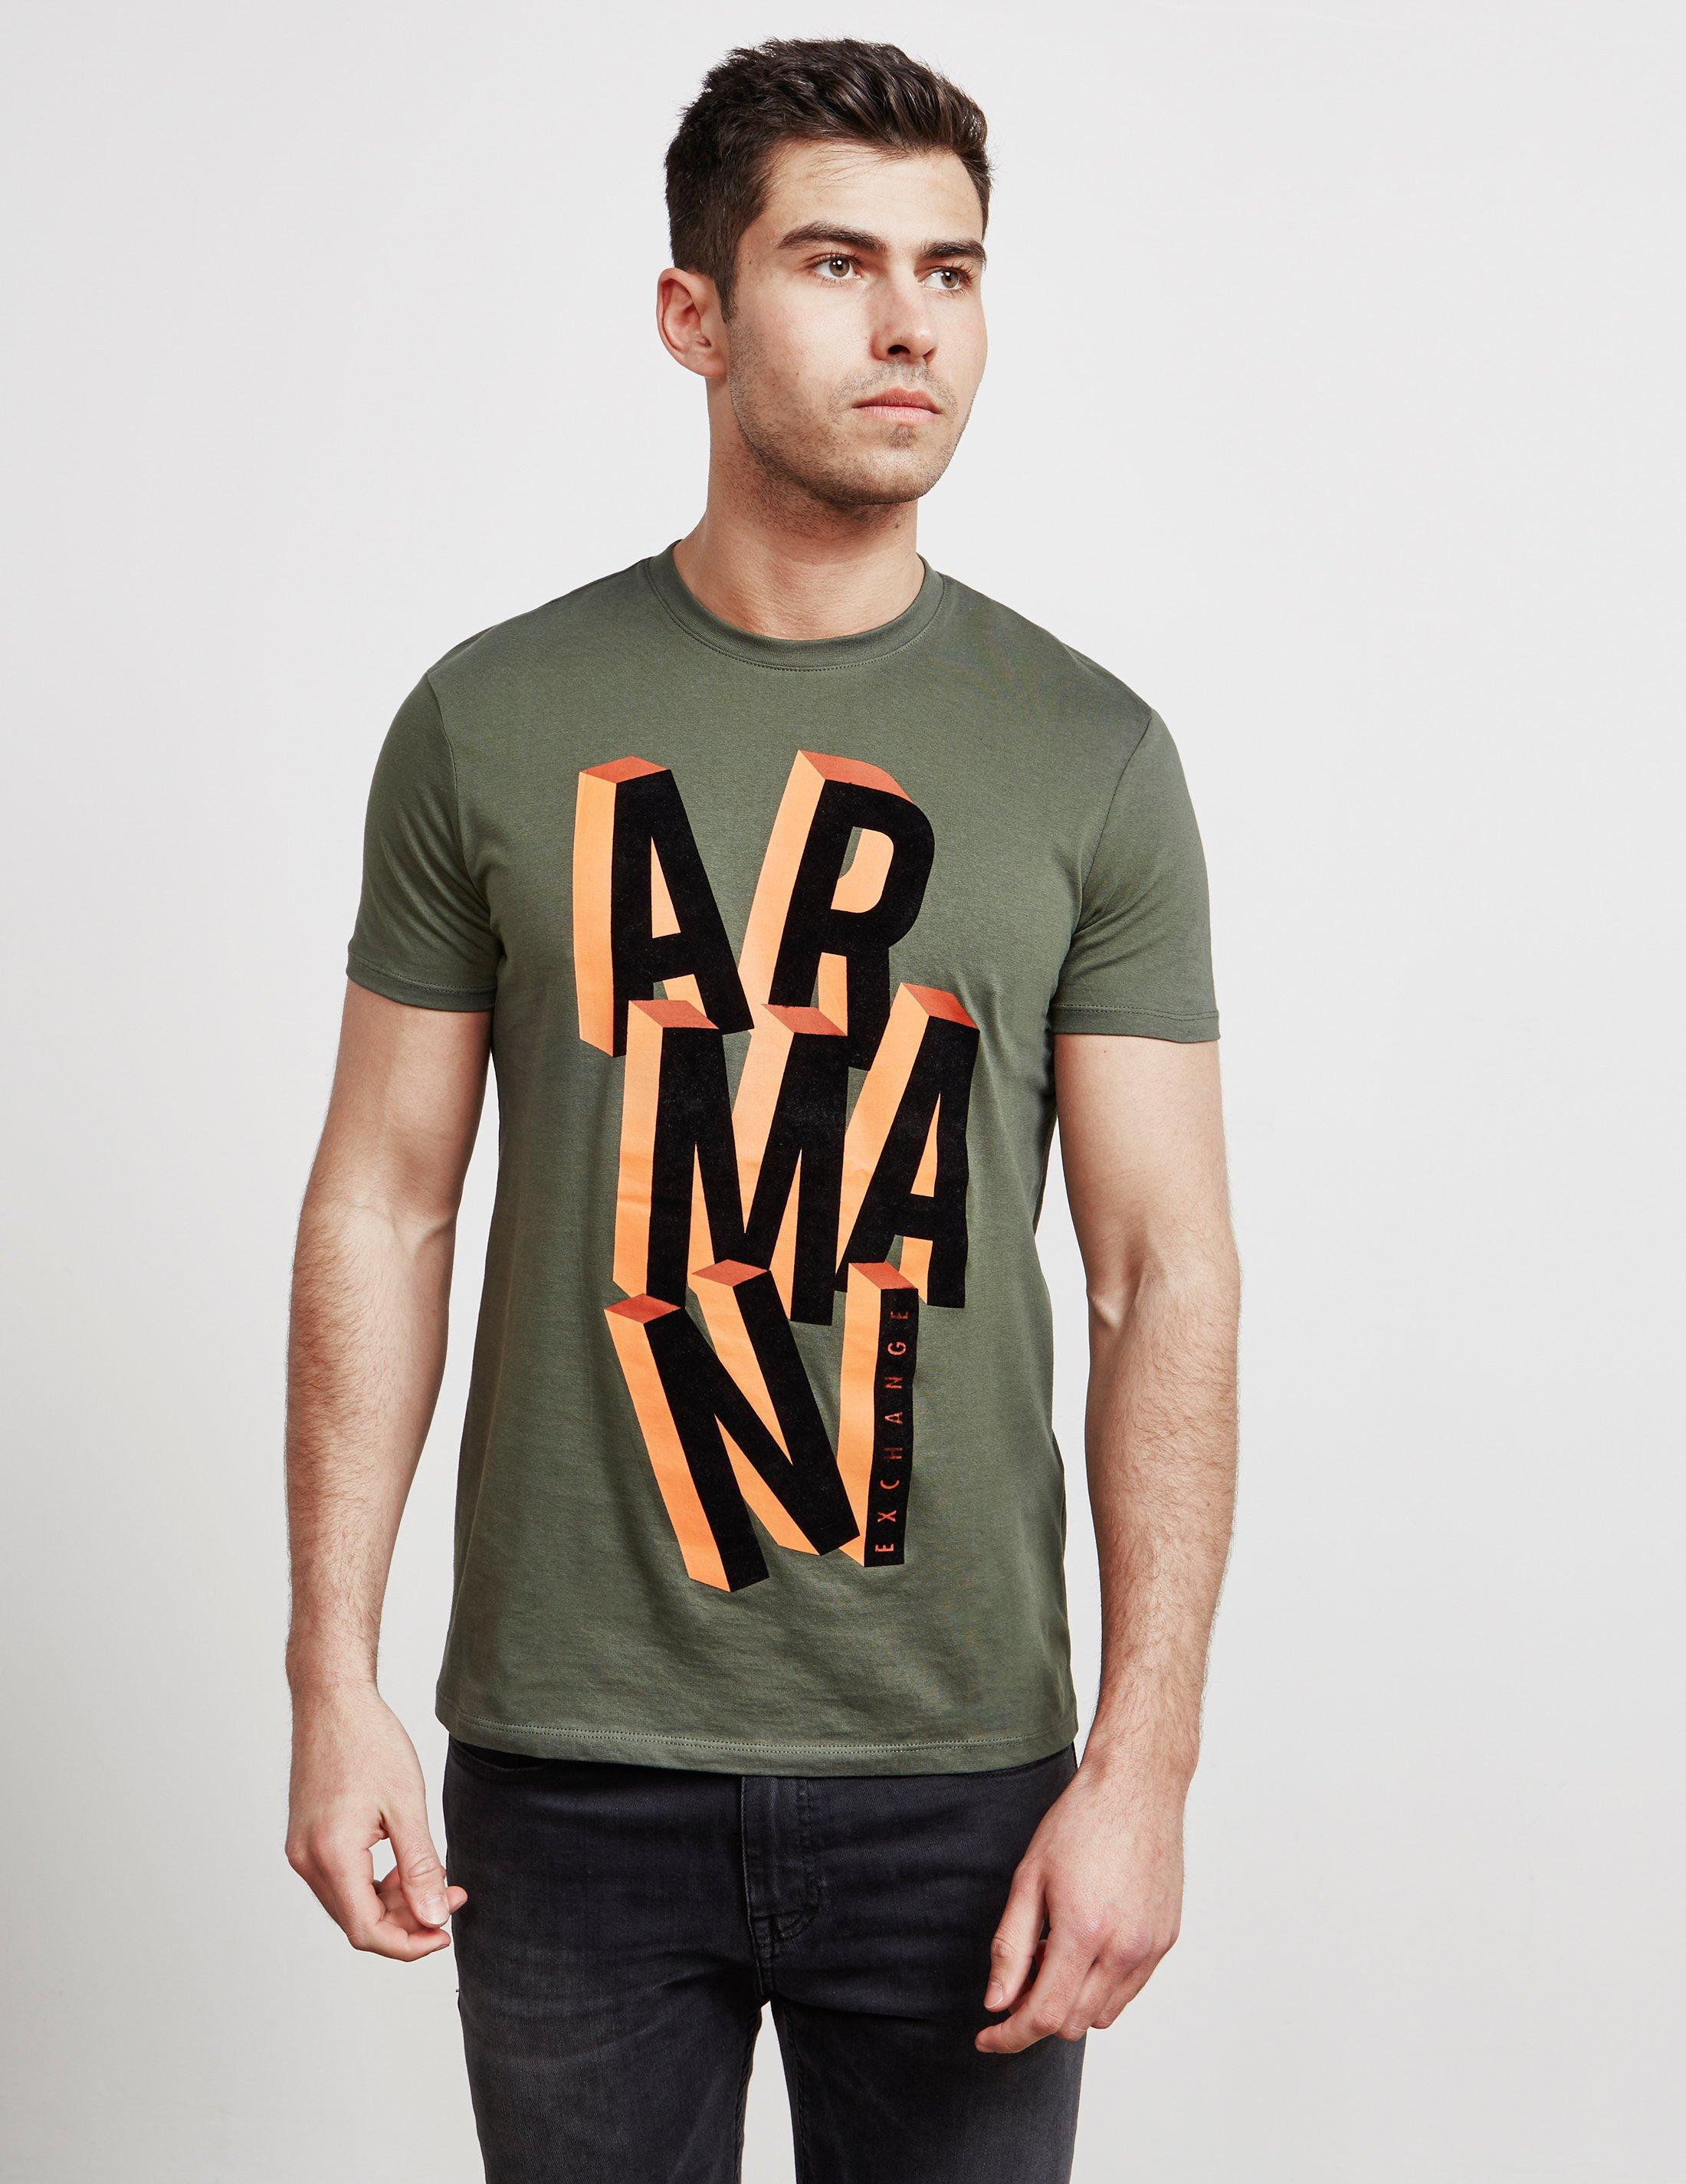 116e99a4 Lyst - Armani Exchange Block Letter Short Sleeve T-shirt Green in ...